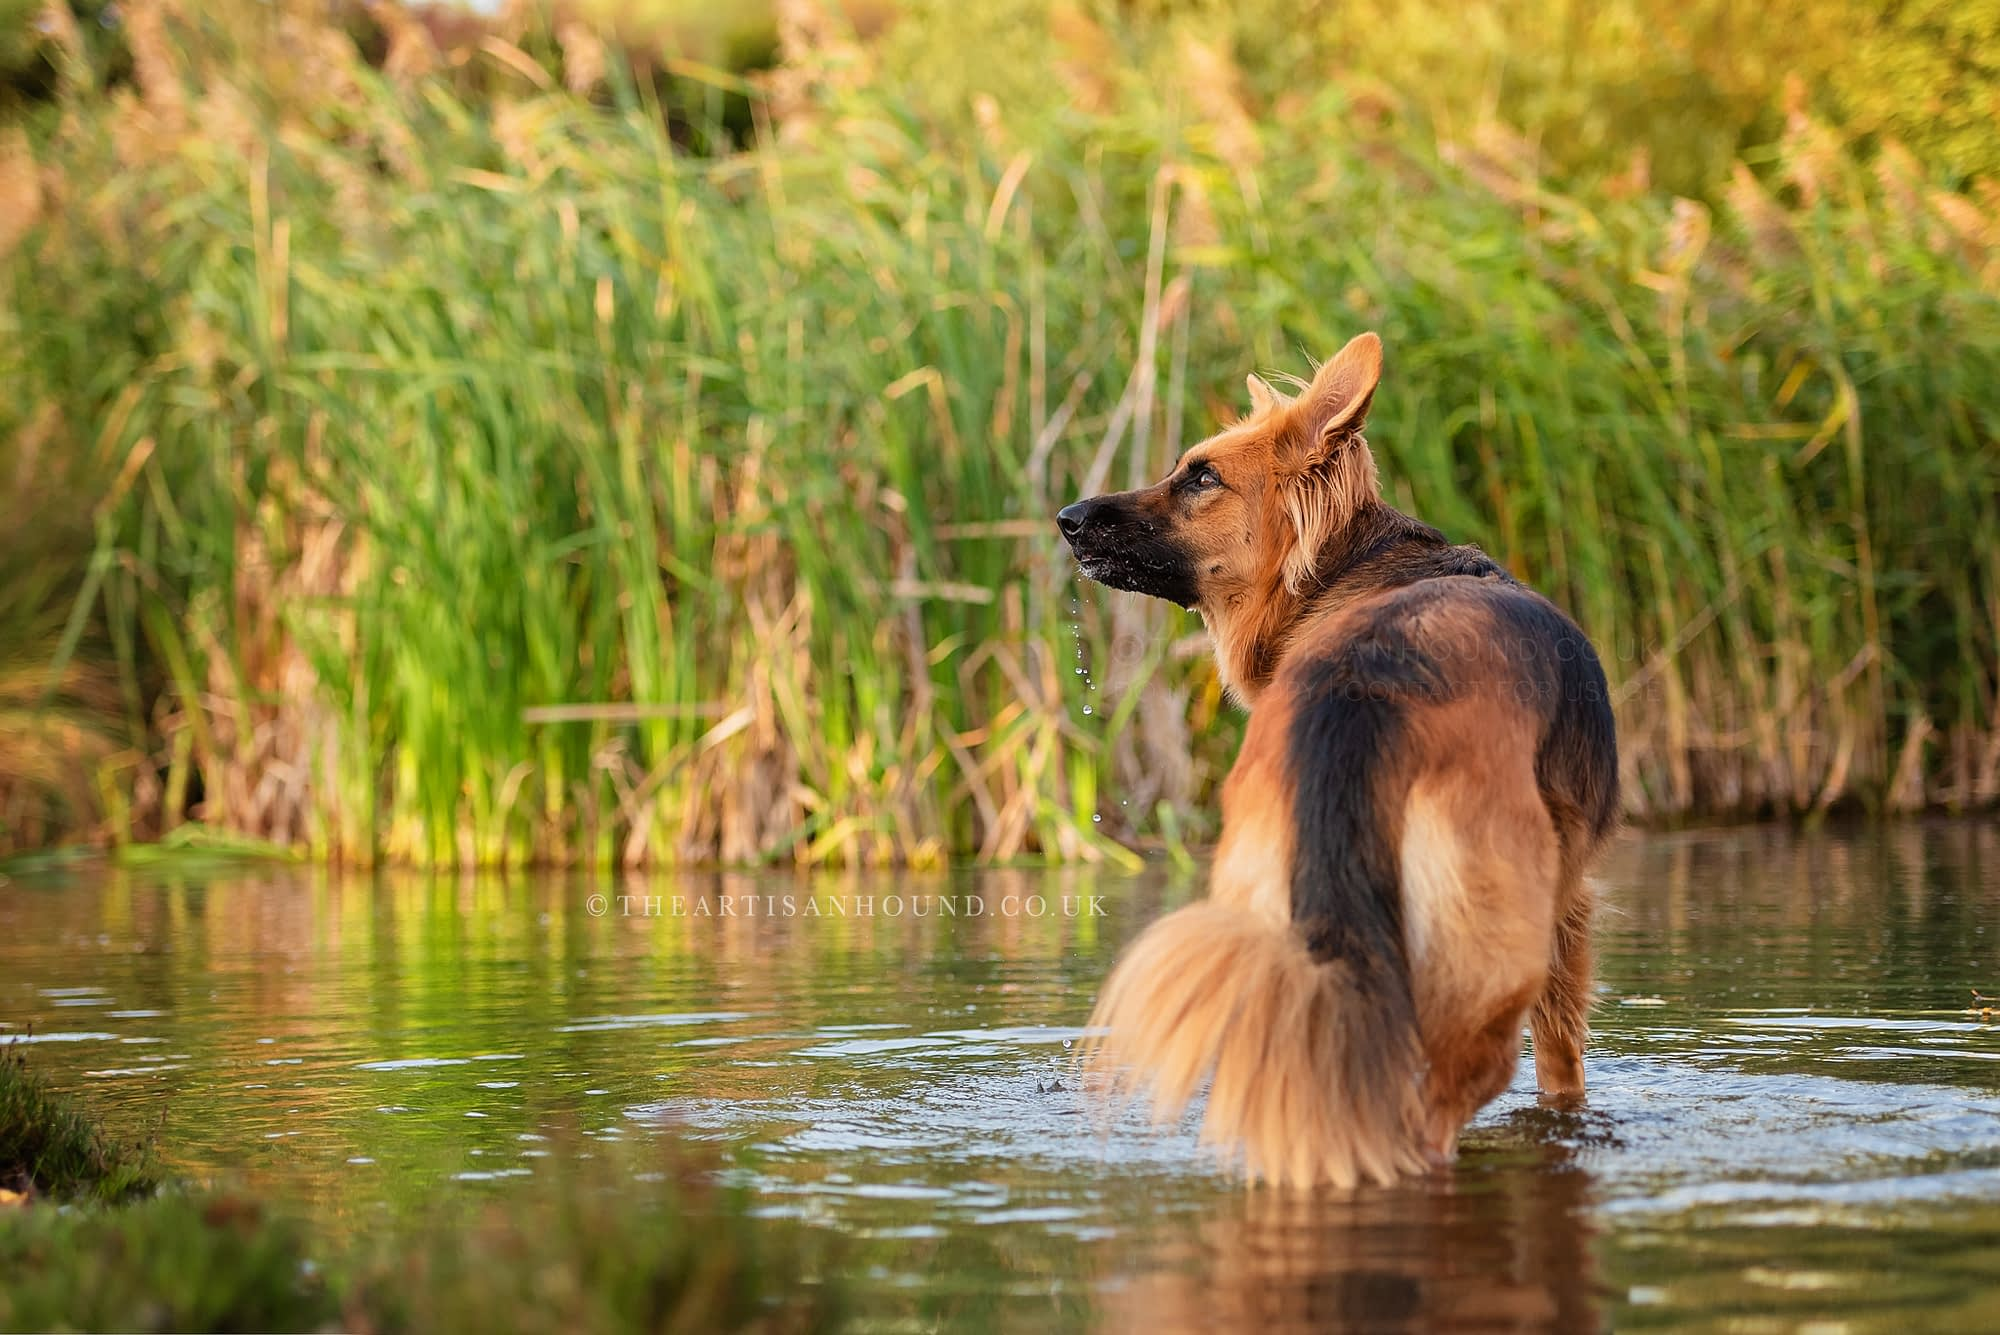 Dog standing in water among reeds